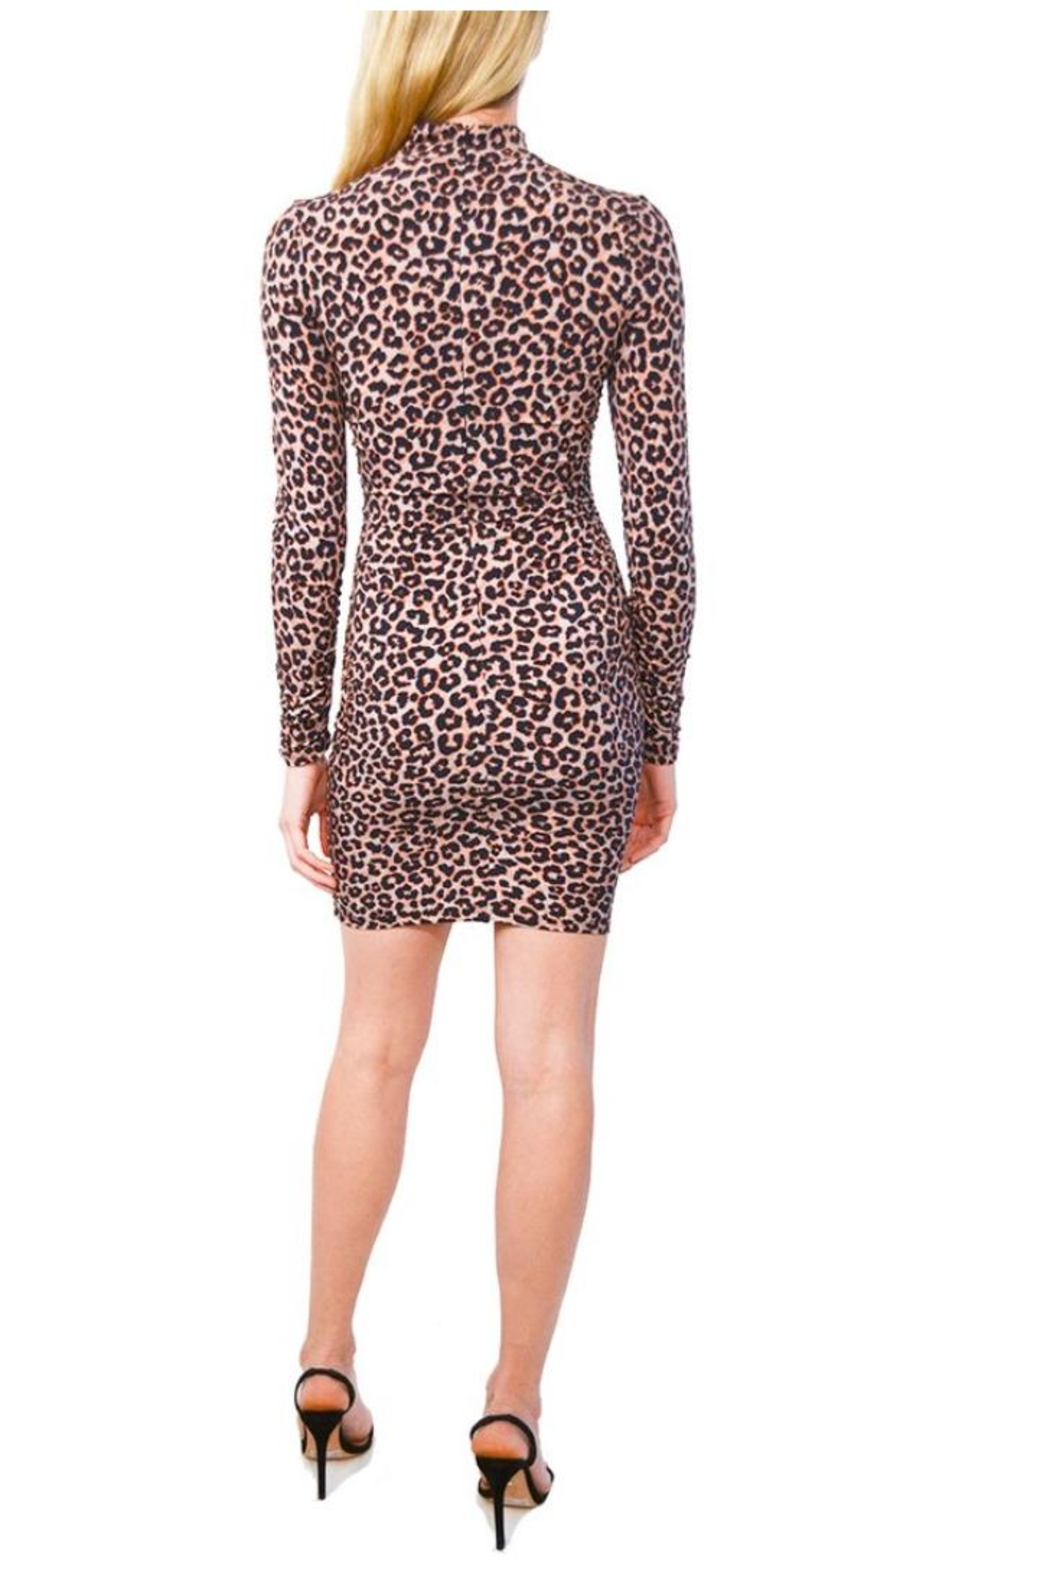 LIKELY Leopard Bali Dress - Front Full Image